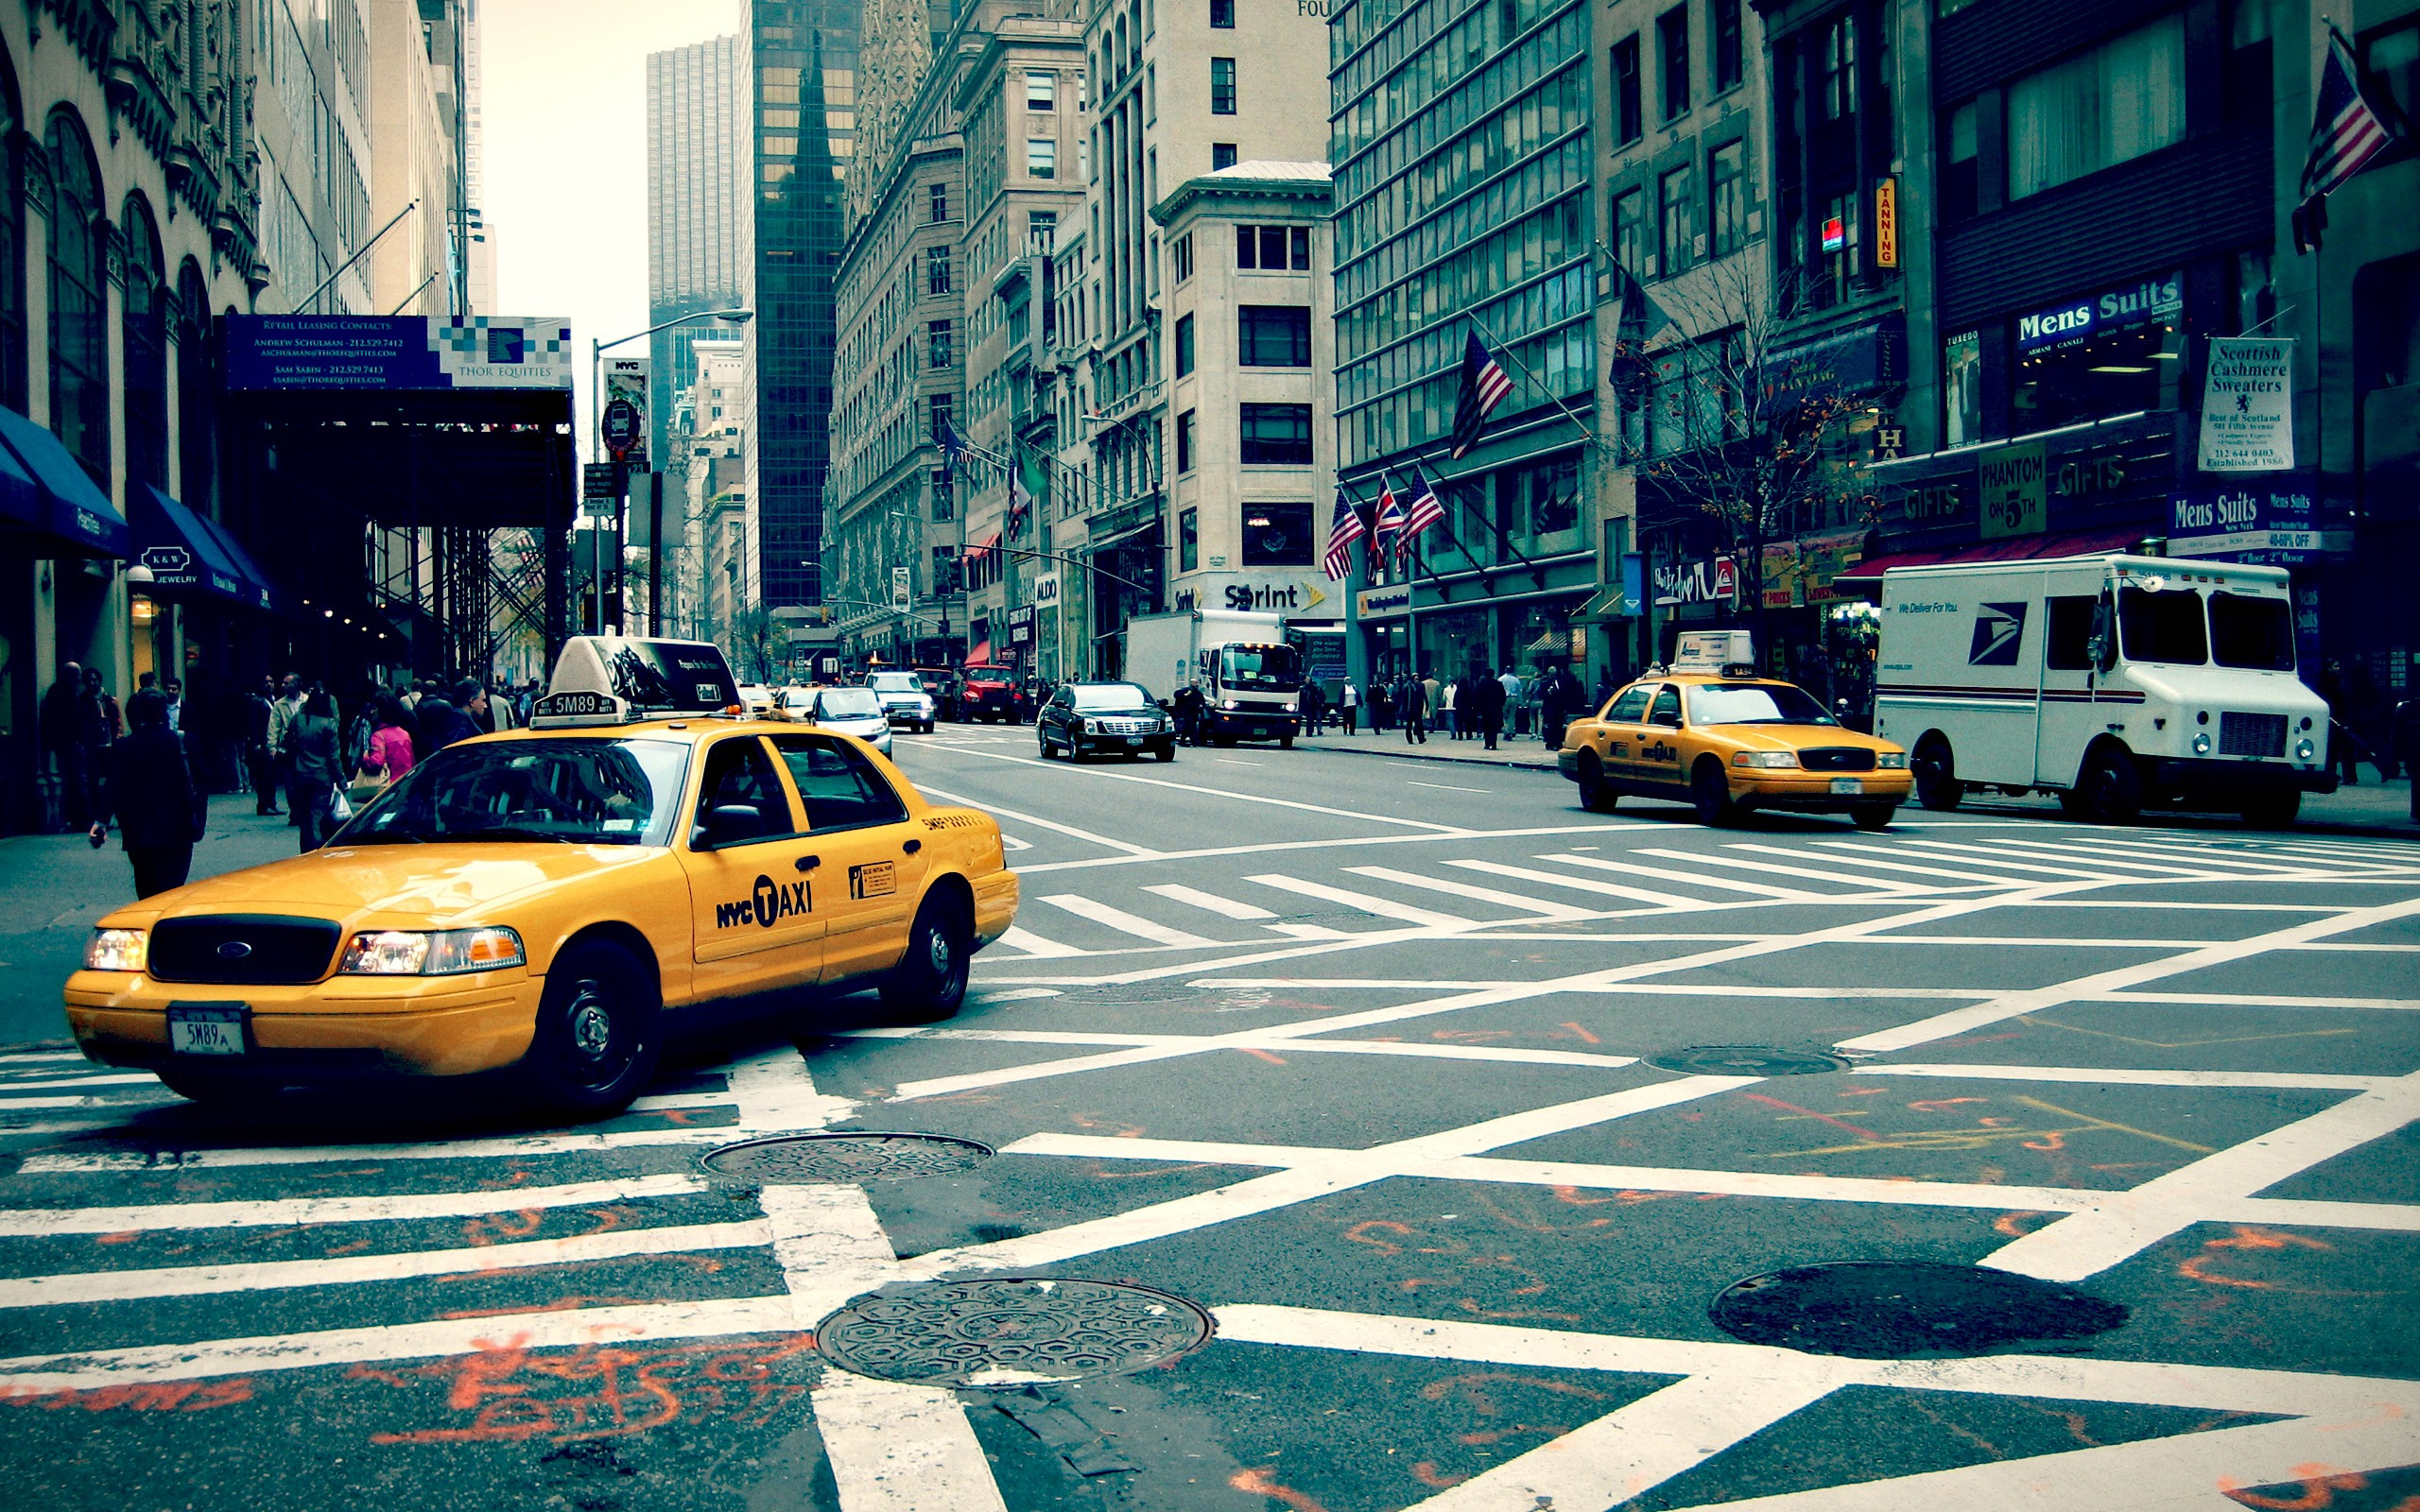 New york street 2560 x 1600 download close